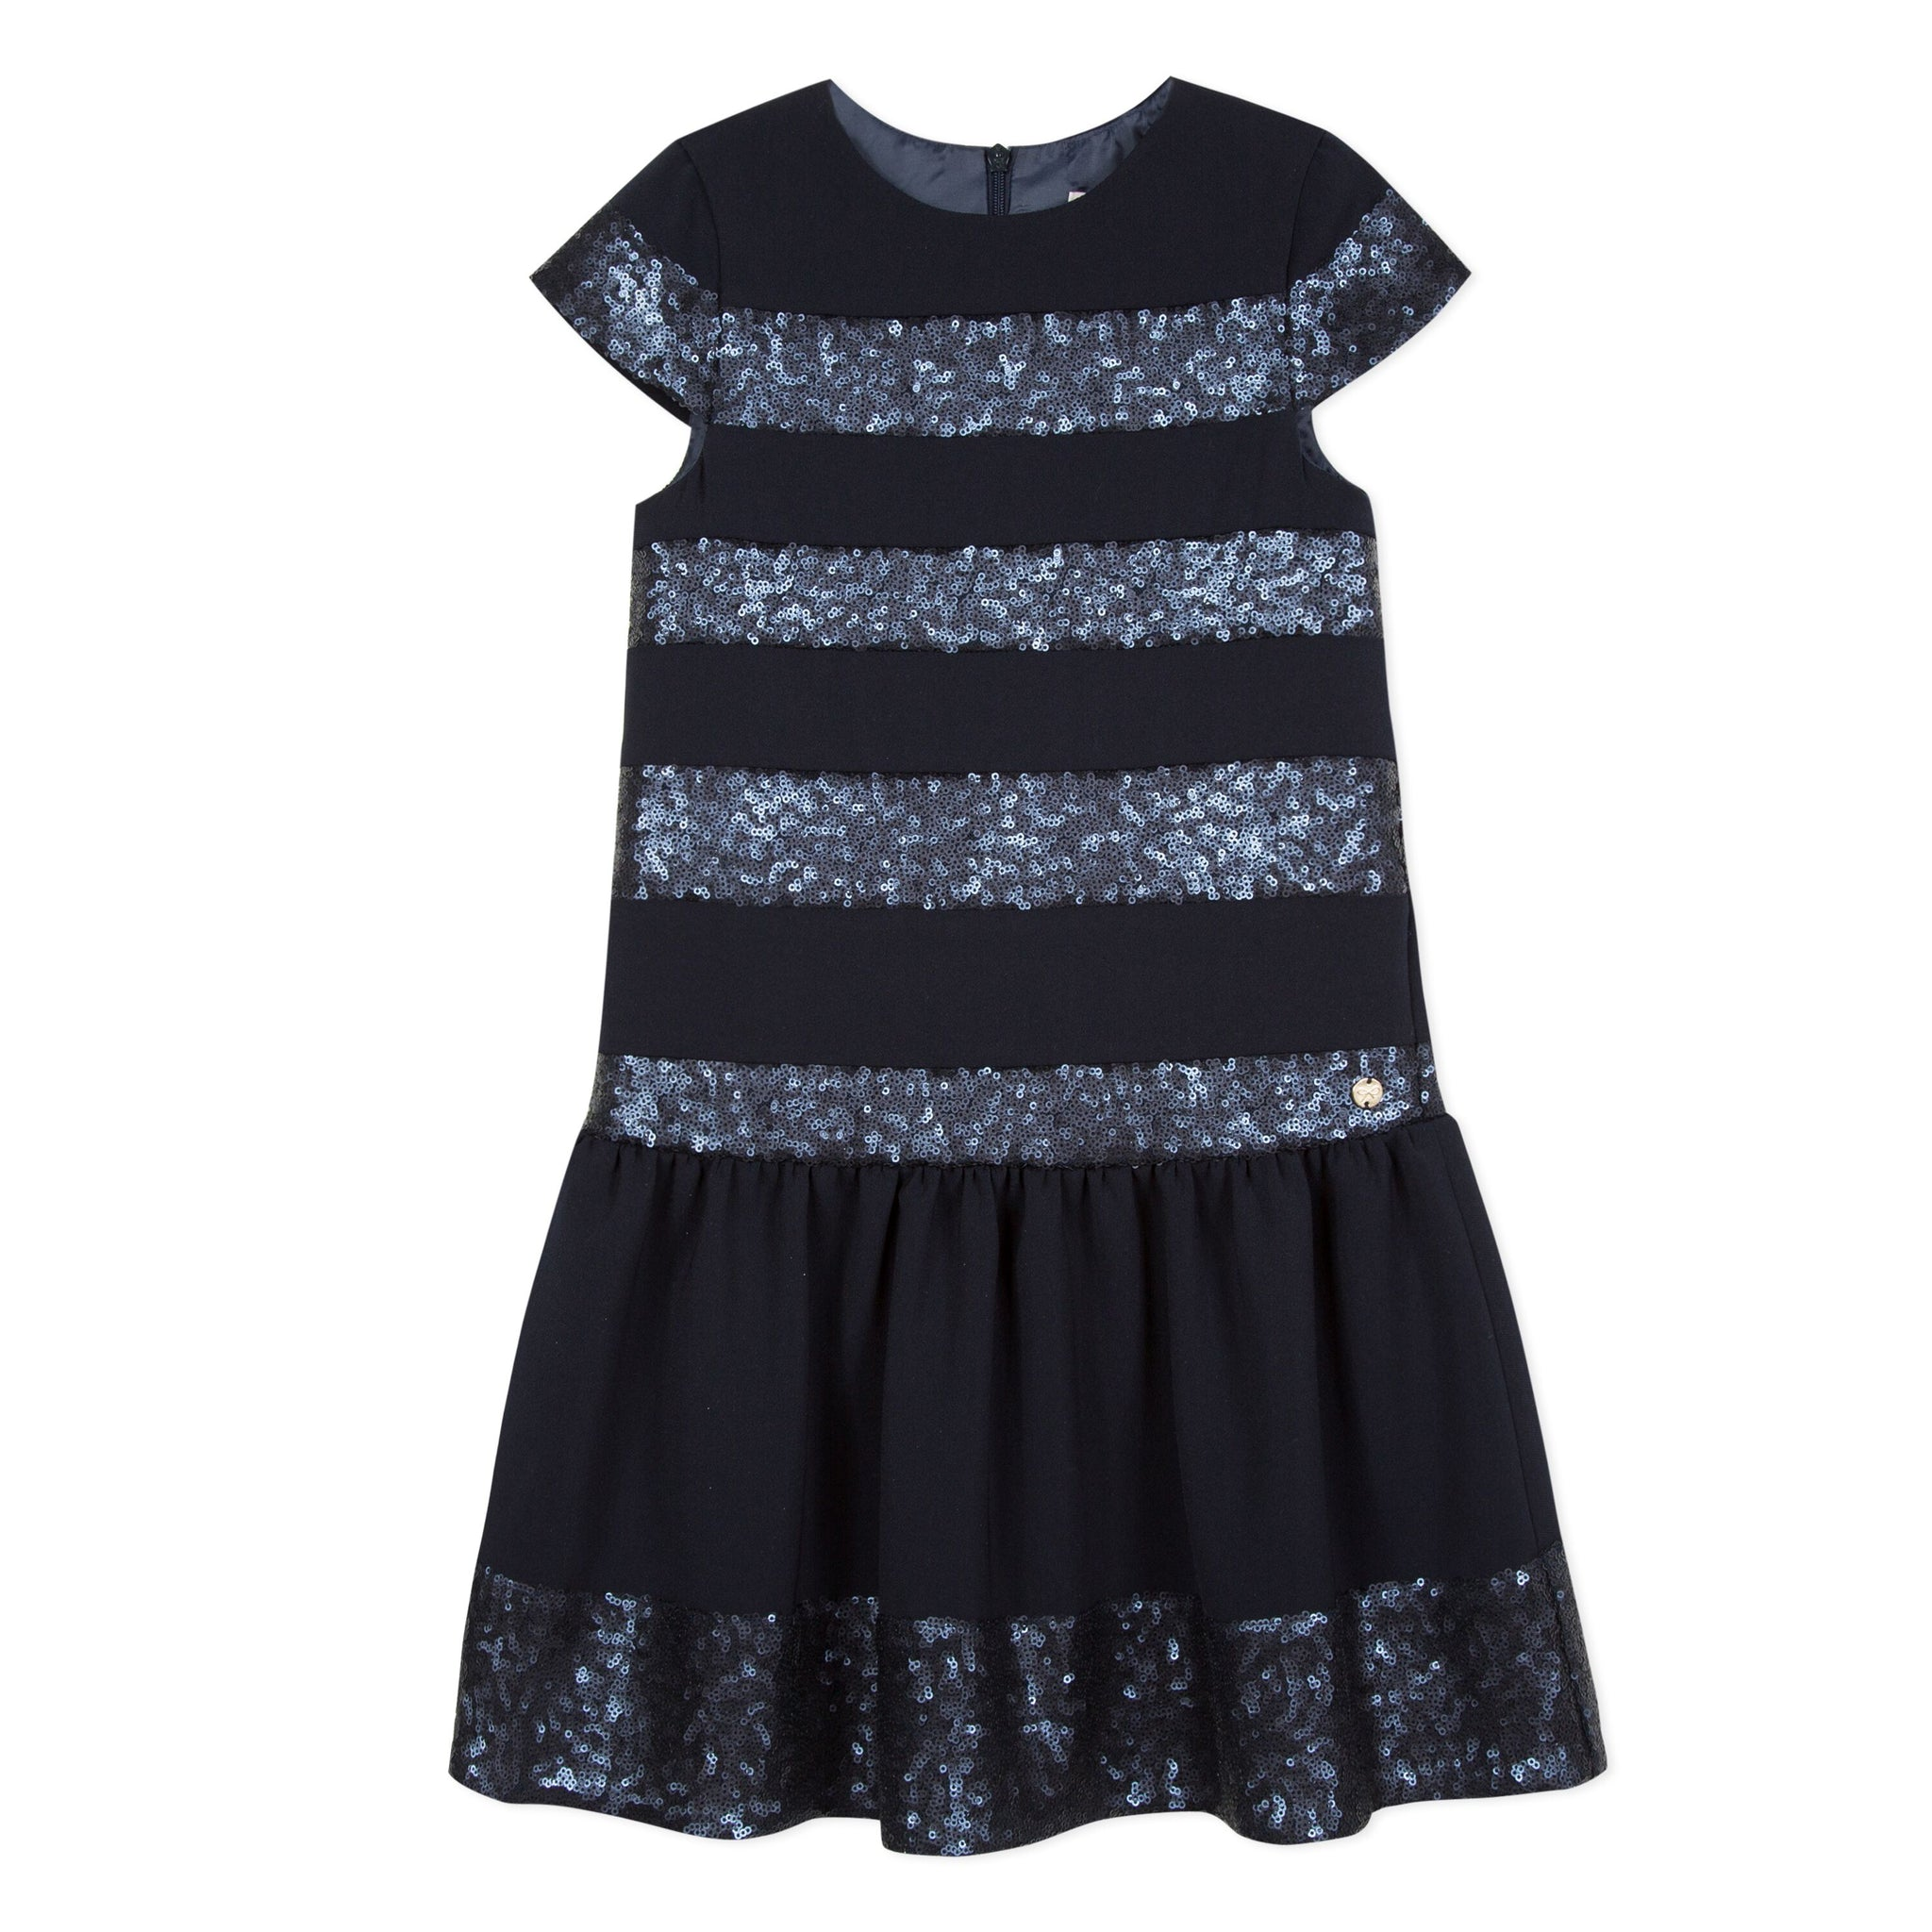 LILI GAUFRETTE Girls Navy Blue Sequin Dress